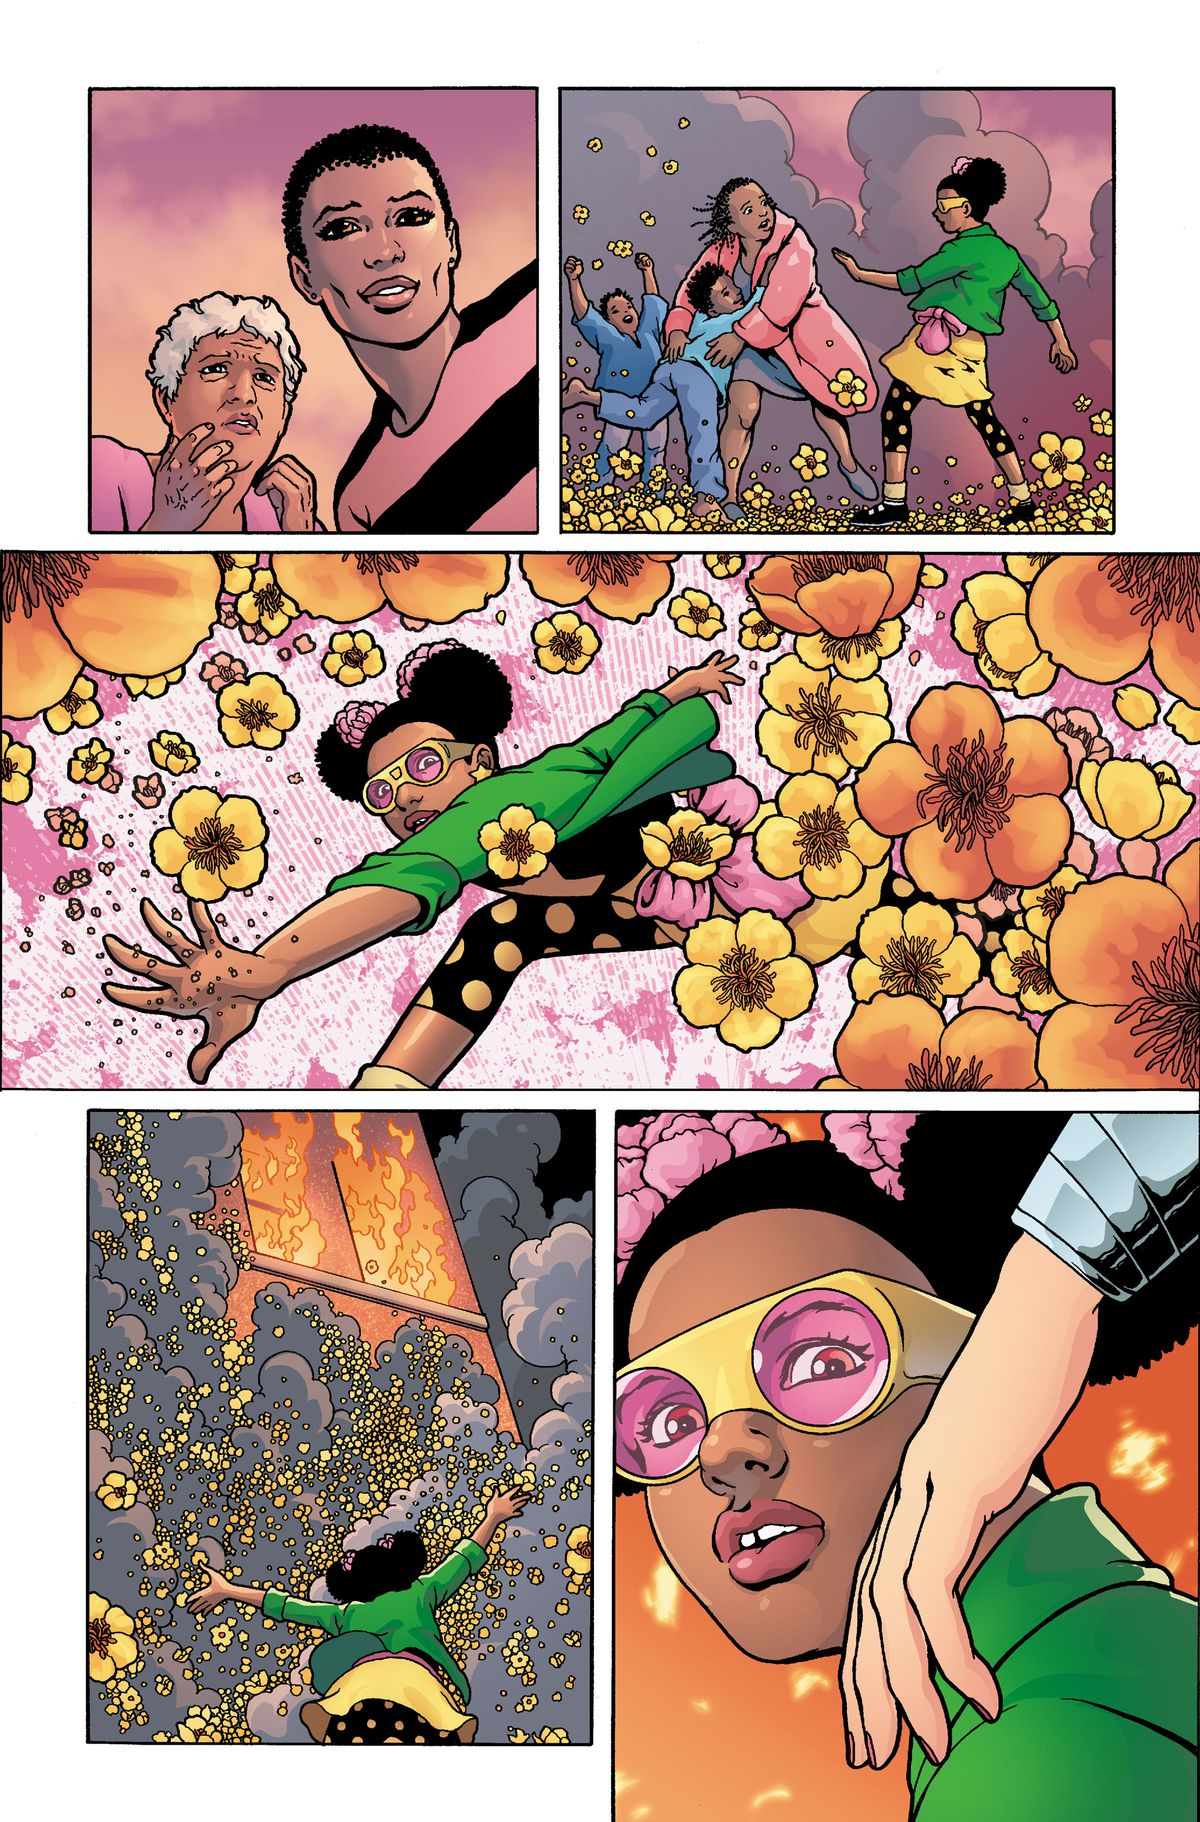 Fighting against the fire, Star-Blossom gets tapped on the shoulder by Wonder Woman, in unfinished art from Wonder Woman #750, DC Comics (2020).